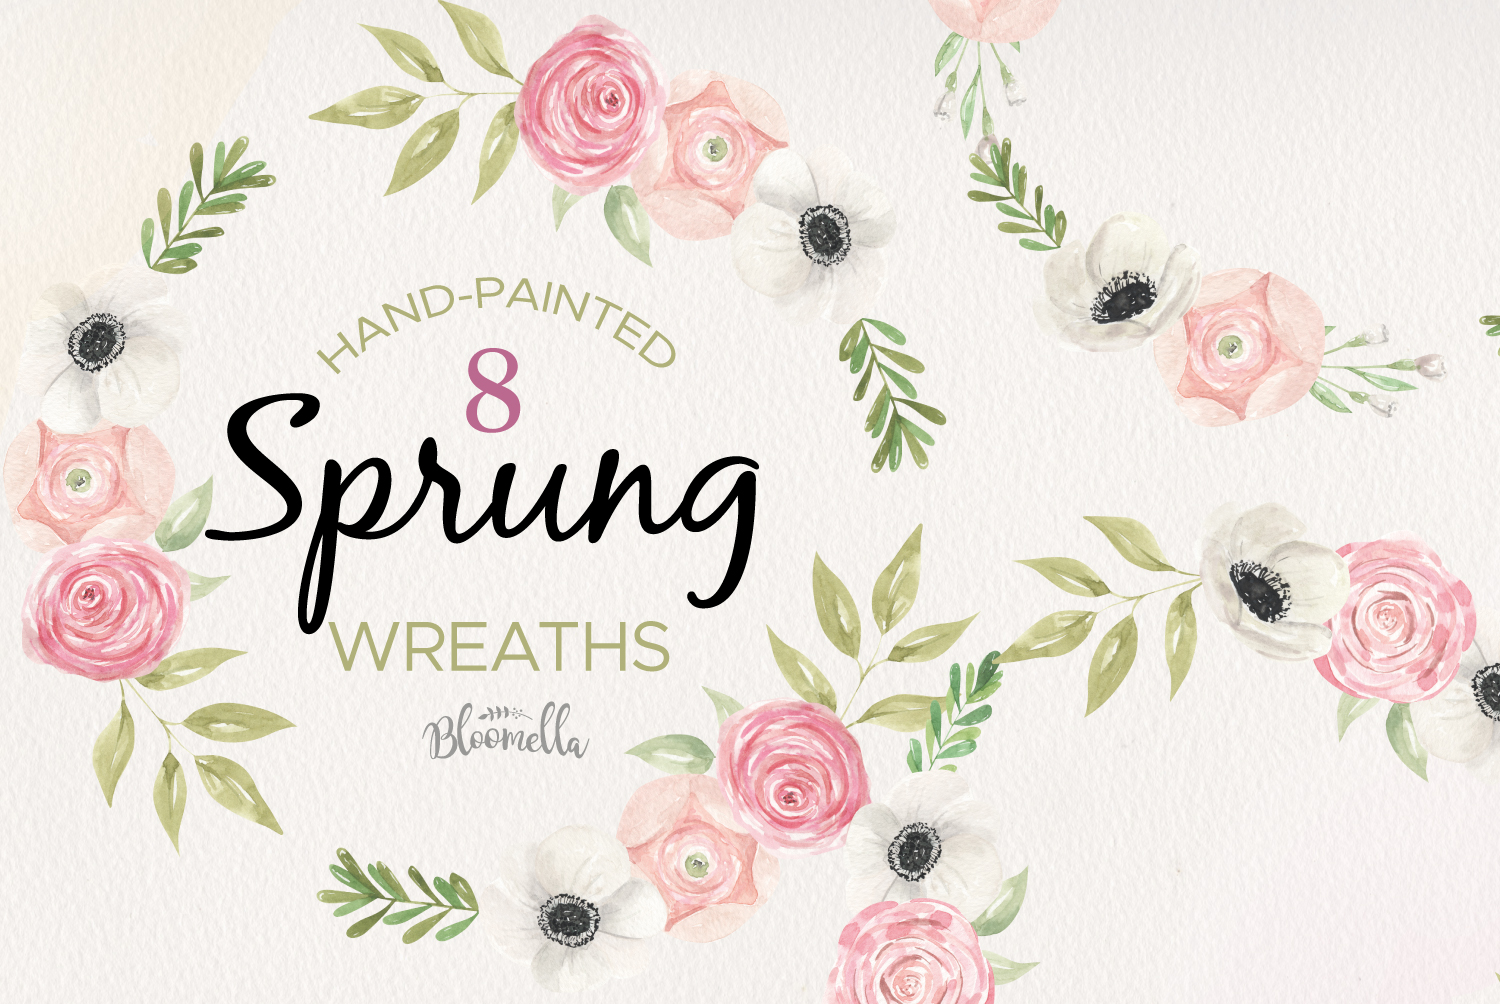 Sprung Floral 6 Wreath Watercolor Flower Tulips Peach Pink example image 1